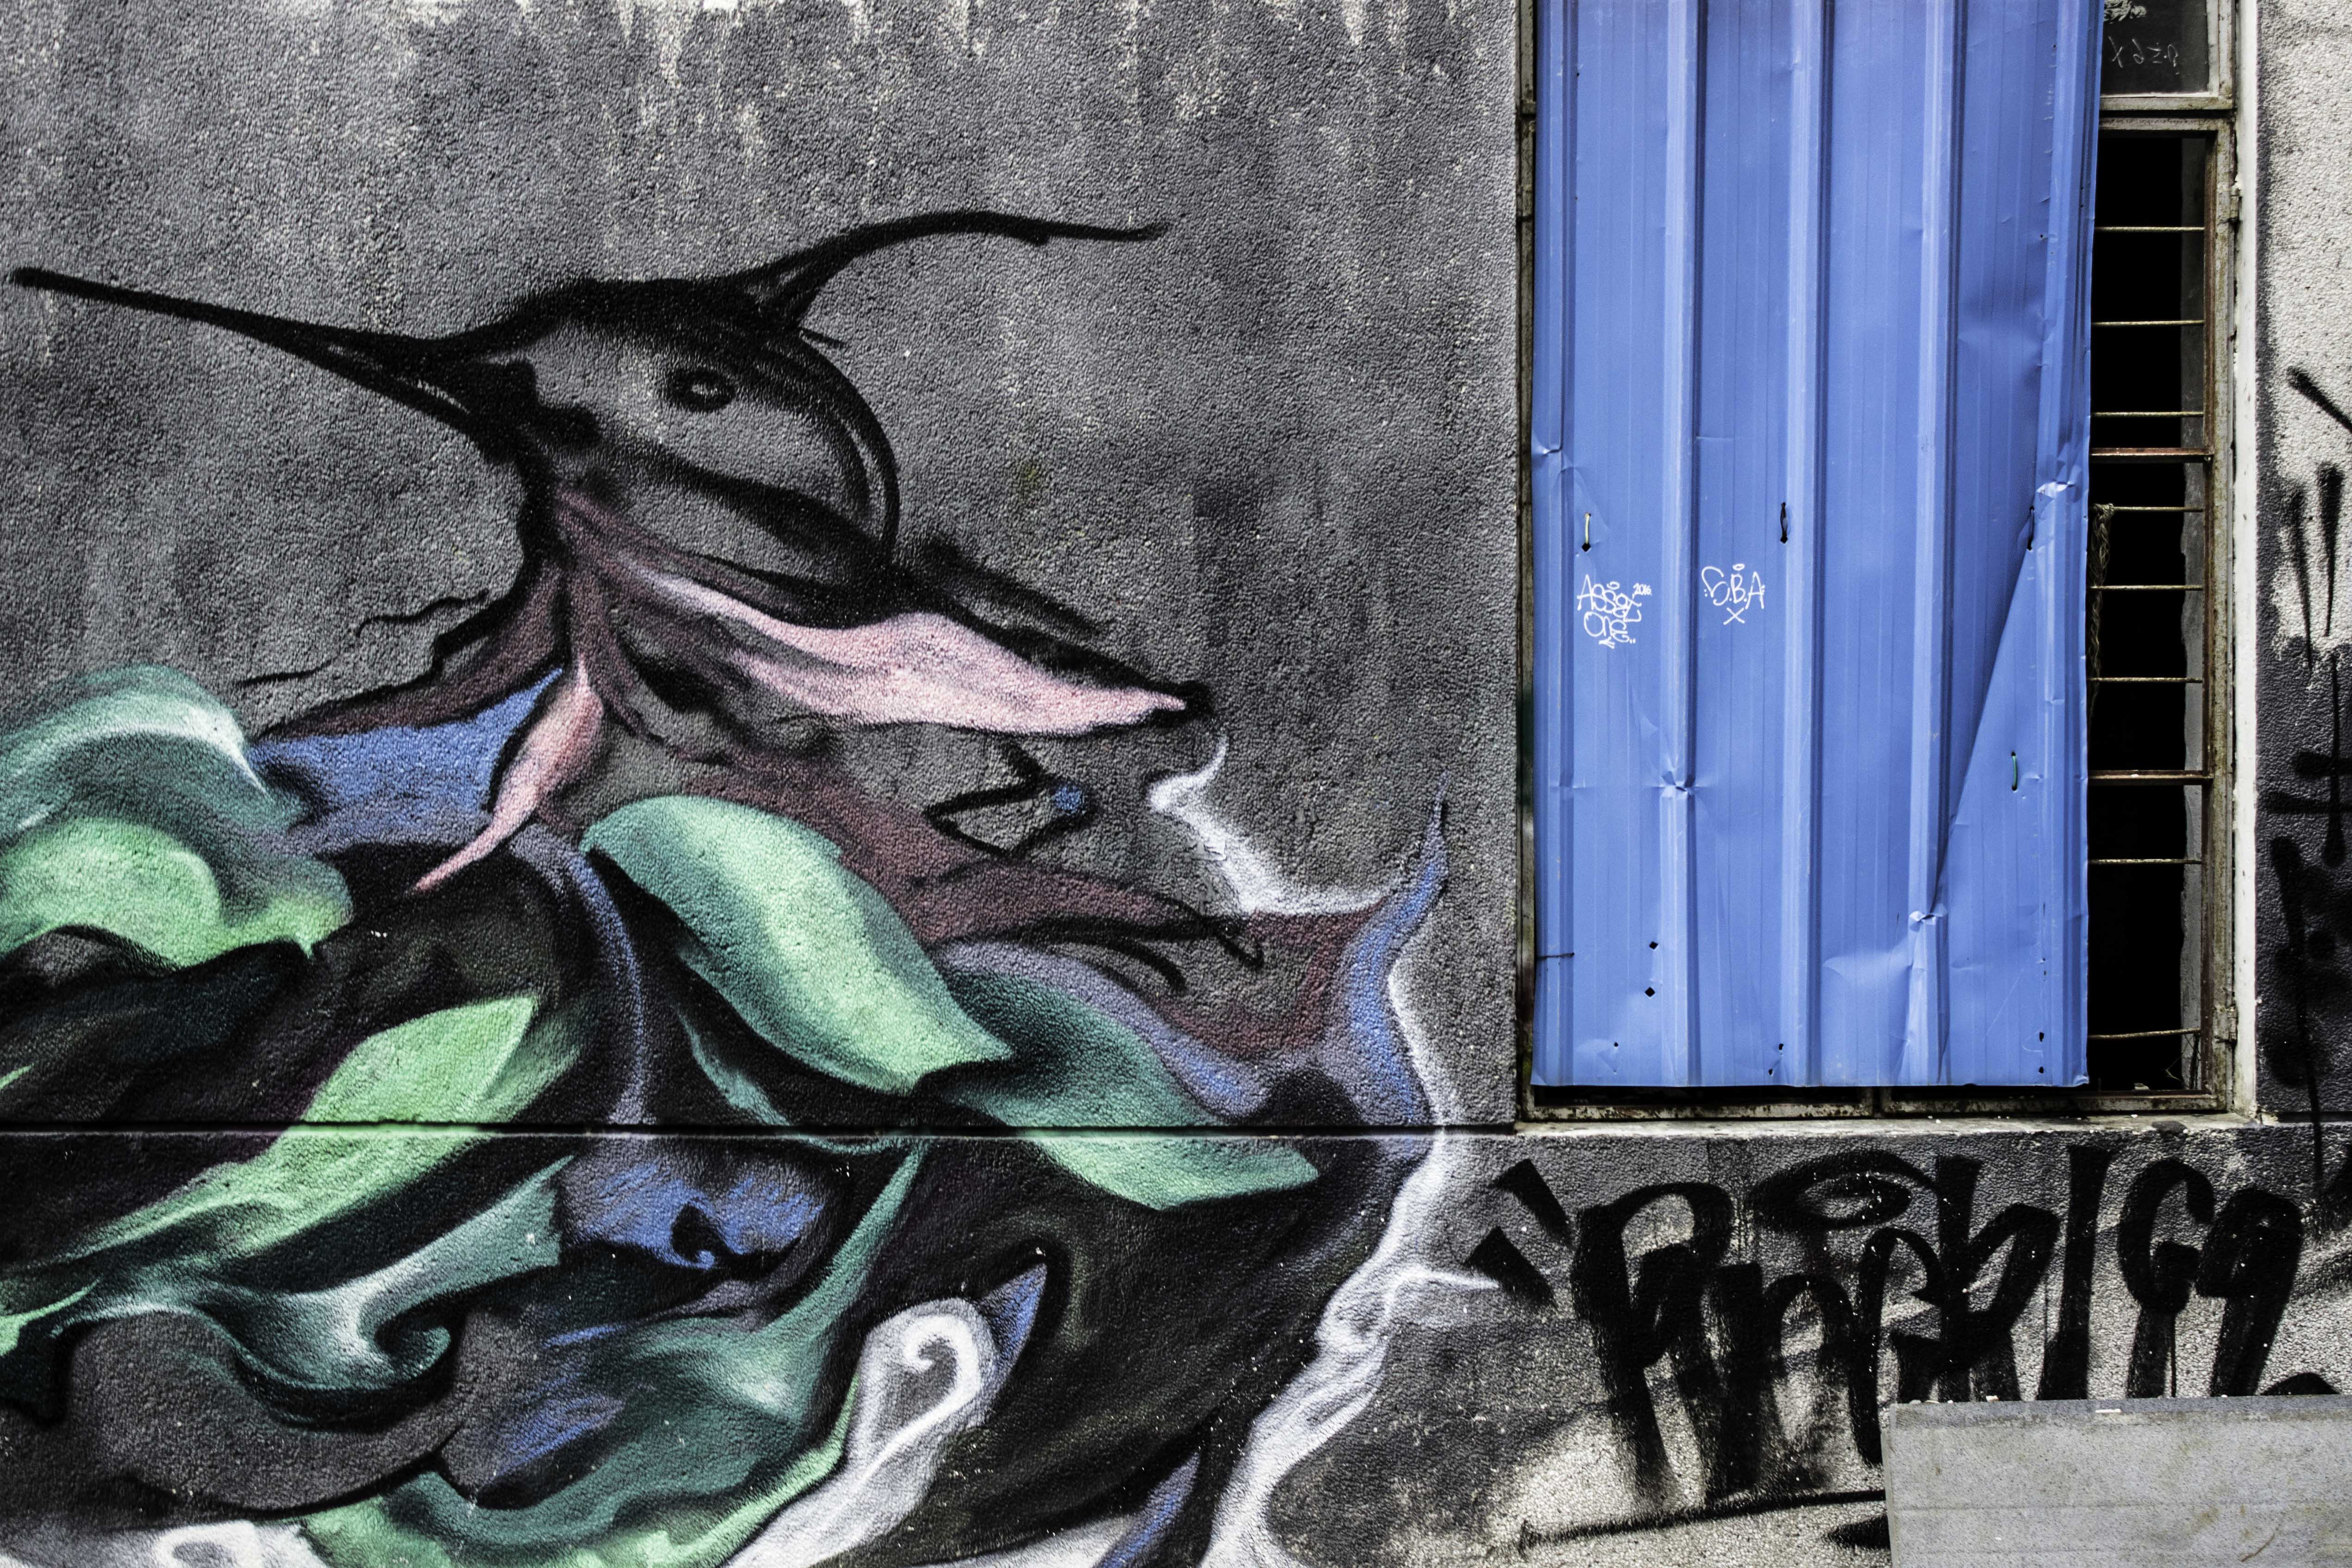 The Street Art of Southern China